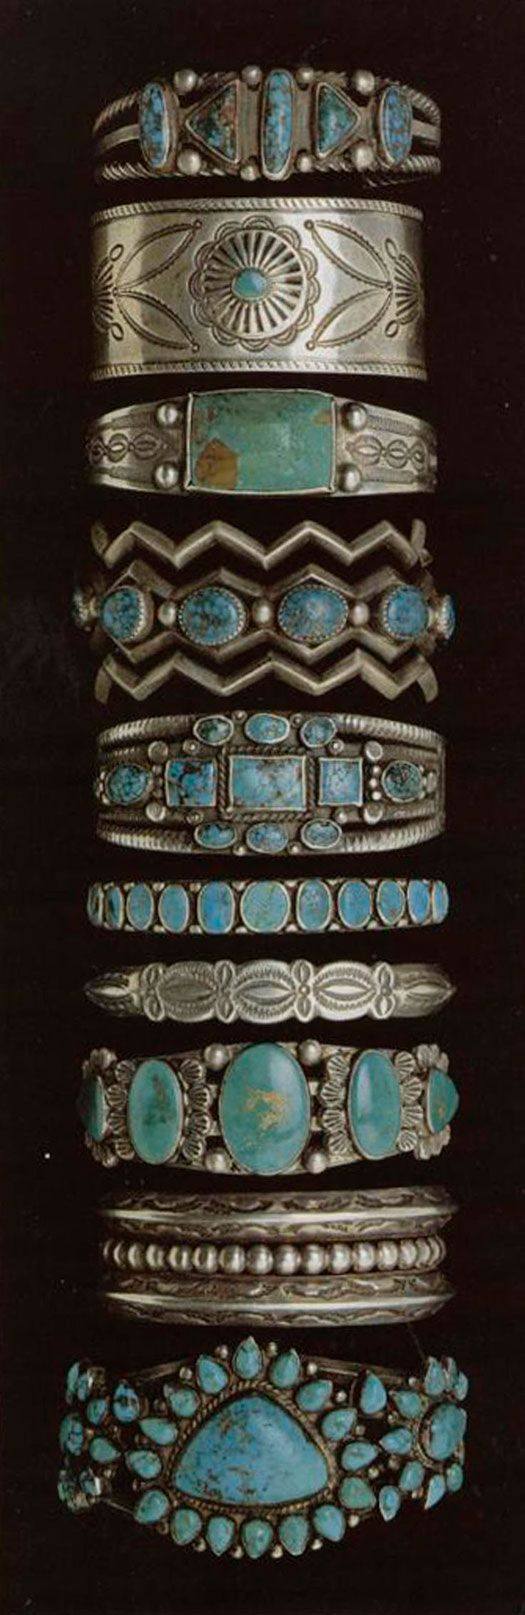 best bejeweled images on pinterest native american jewelry